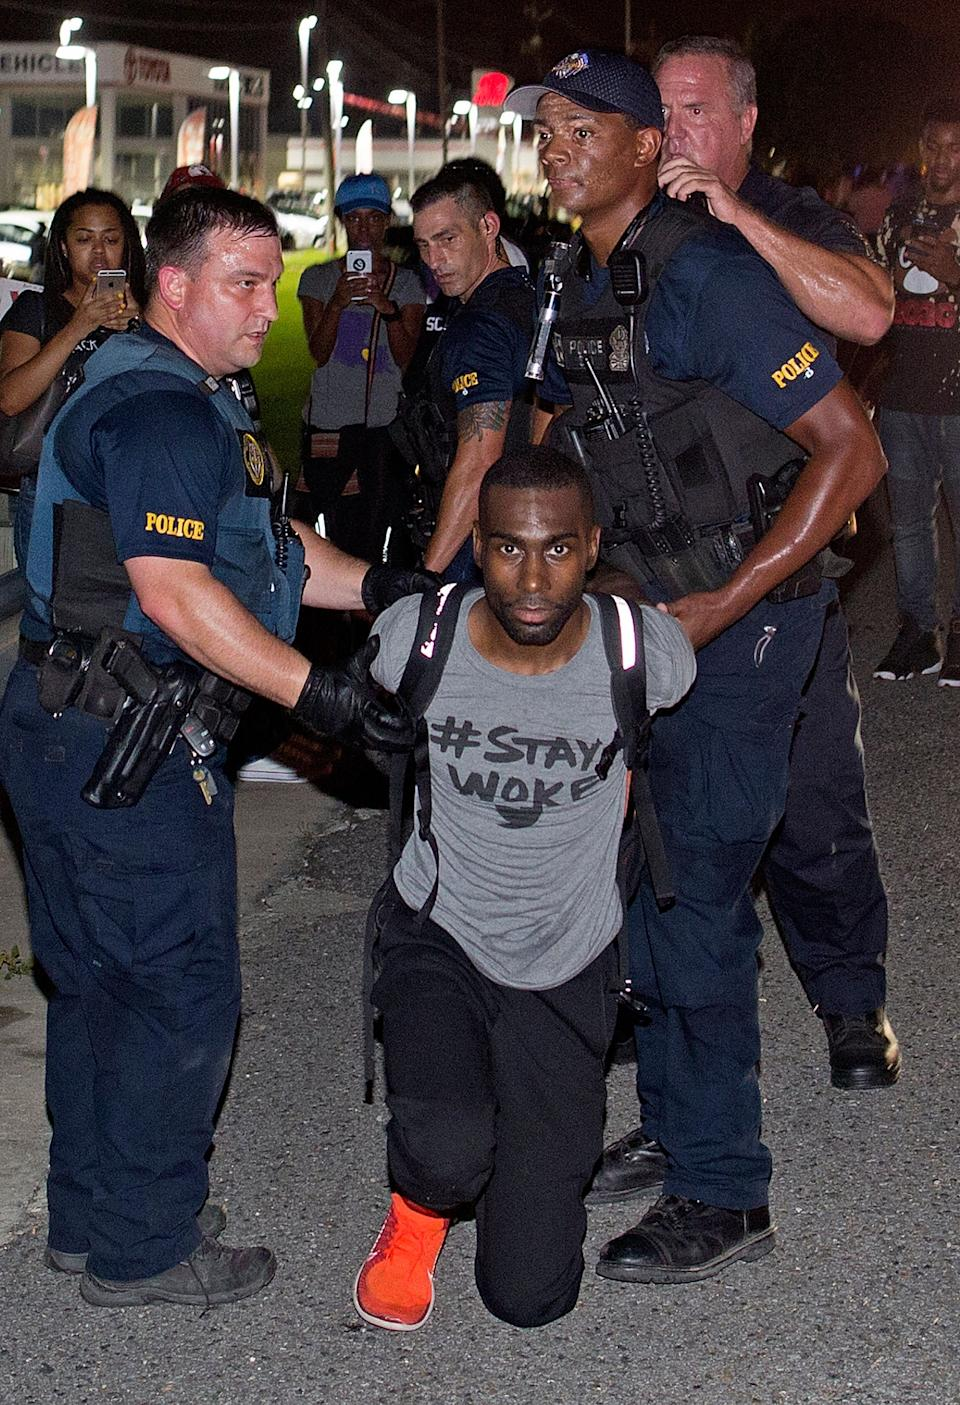 Police officers arrest activist DeRay McKesson during a protest along Airline Highway, a major road that passes in front of the Baton Rouge Police Department headquarters Saturday, July 9, 2016, in Baton Rouge, La. Protesters angry over the fatal shooting of Alton Sterling by two white Baton Rouge police officers rallied Saturday at the convenience store where he was shot, in front of the city's police department and at the state Capitol for another day of demonstrations. (AP Photo/Max Becherer)